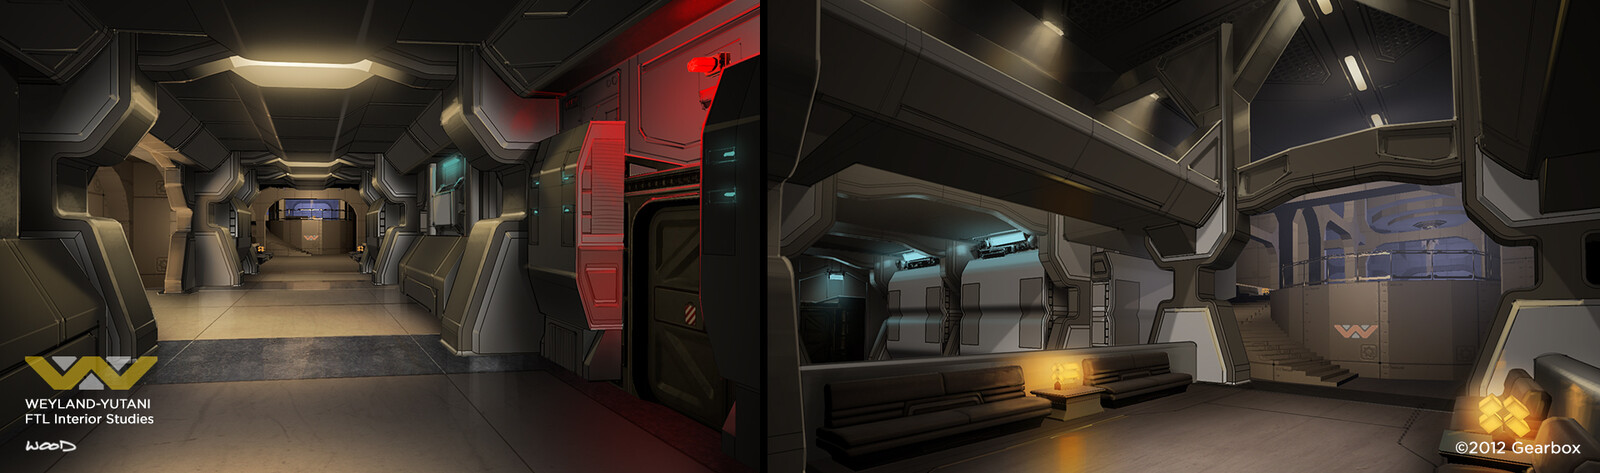 Paint-overs of FTL flagship interior